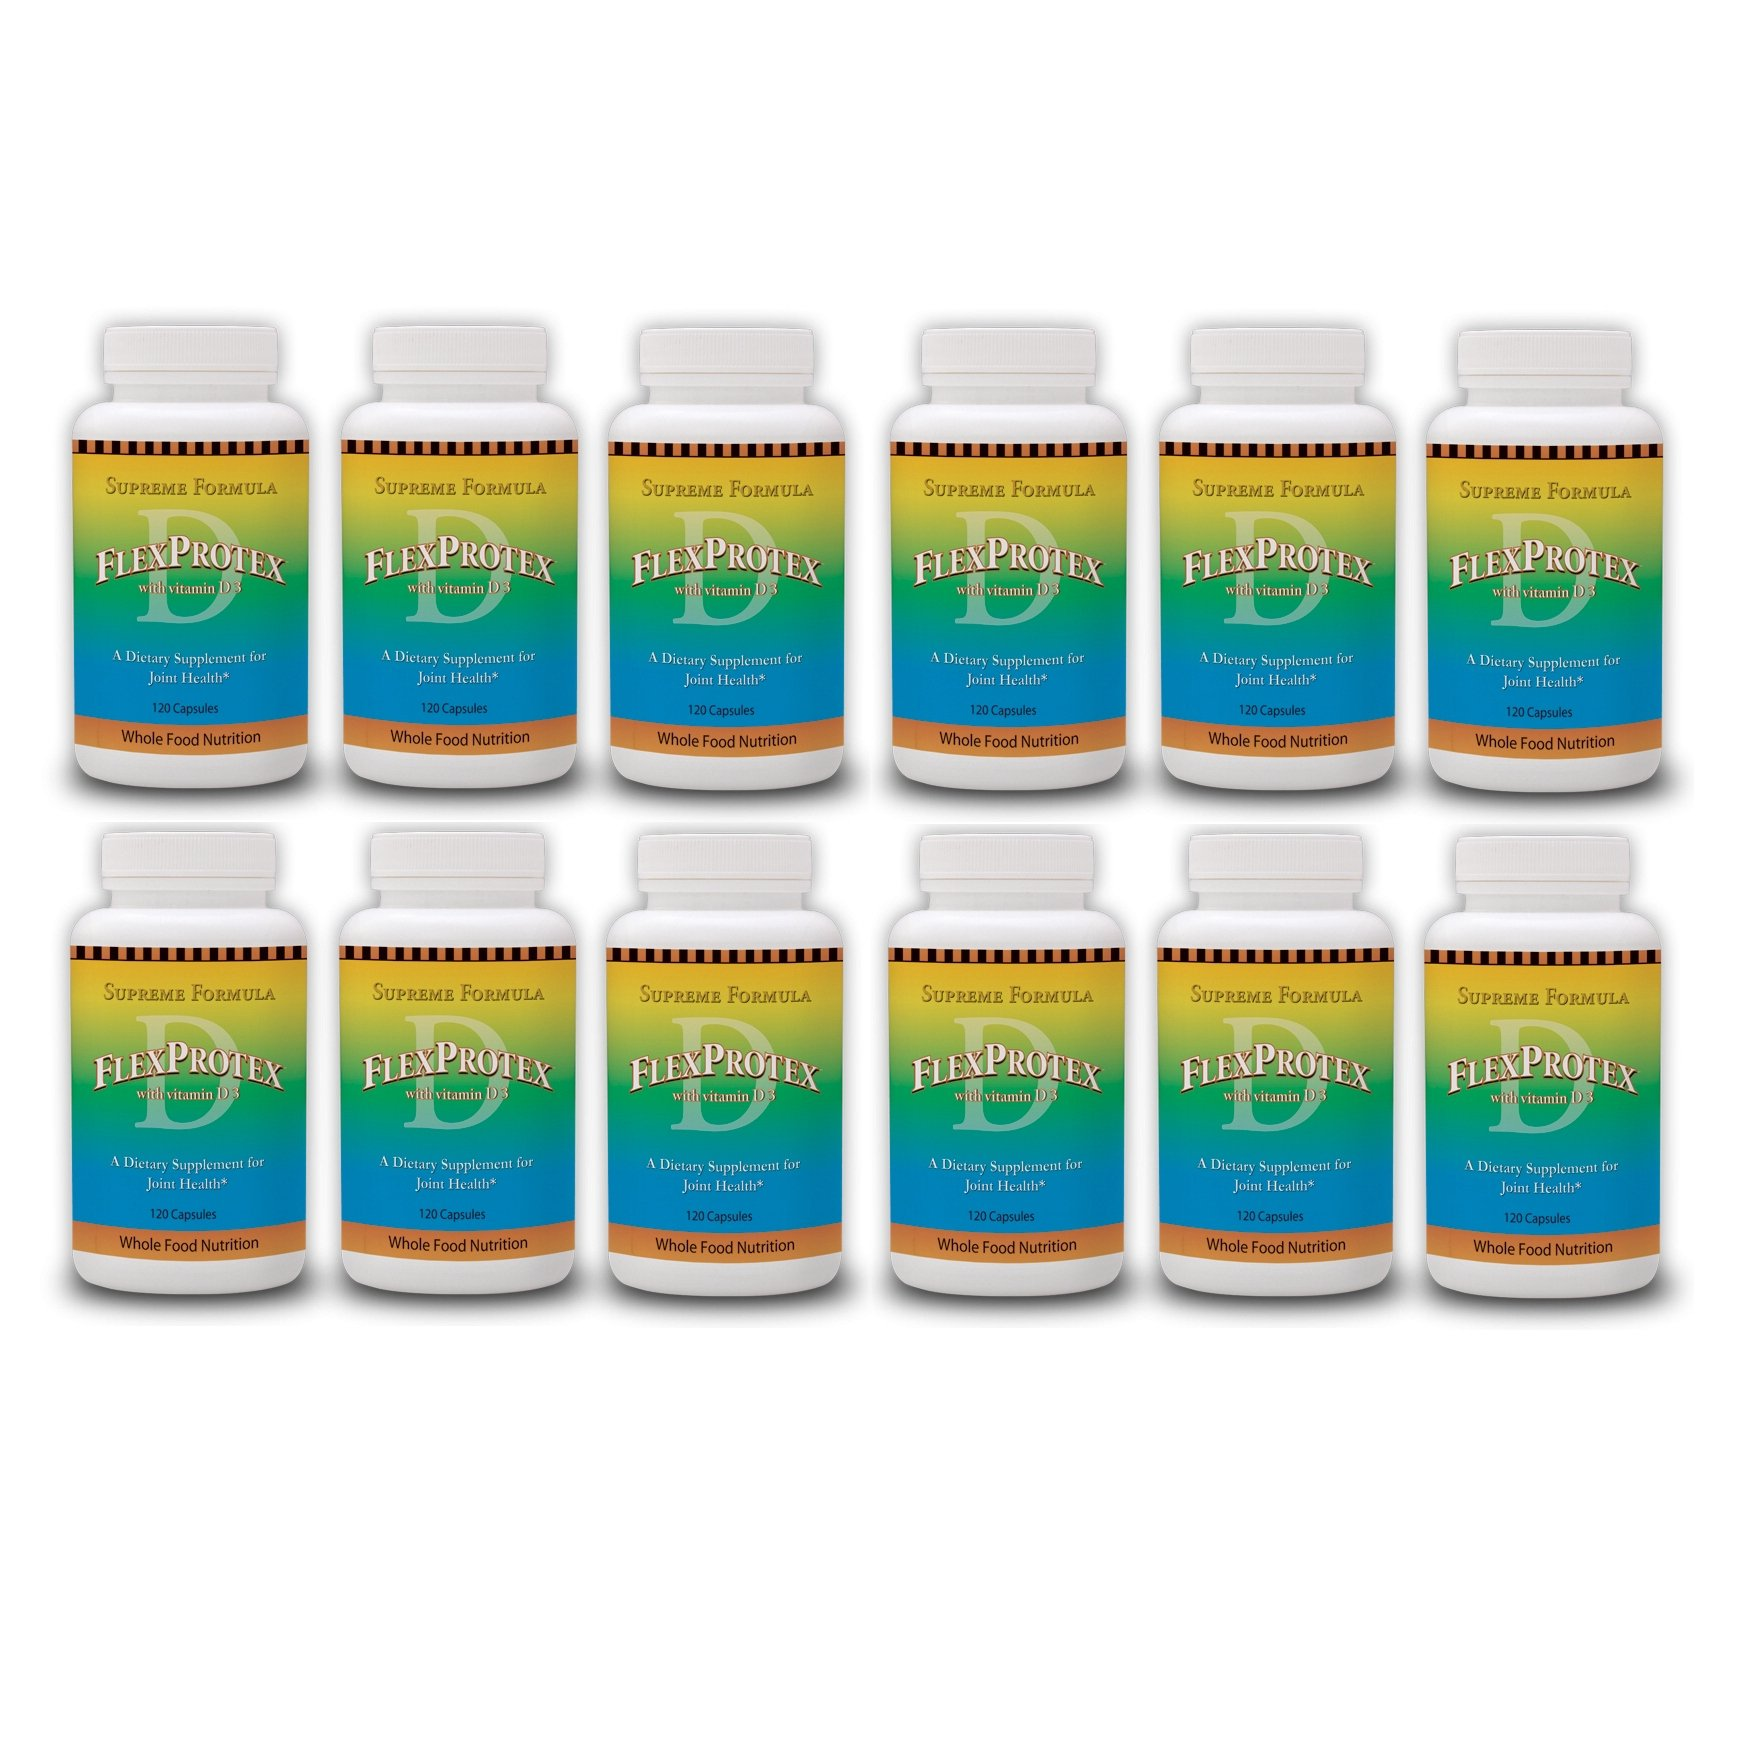 FlexProtex D 884mg Joint Support 12 btls PLUS 1 Silver Foil pack CoralCal Daily Coral Calcium Sachets 6 sachets Flex Protex 120 capsules with Turmeric Chondroitin Glucosamine